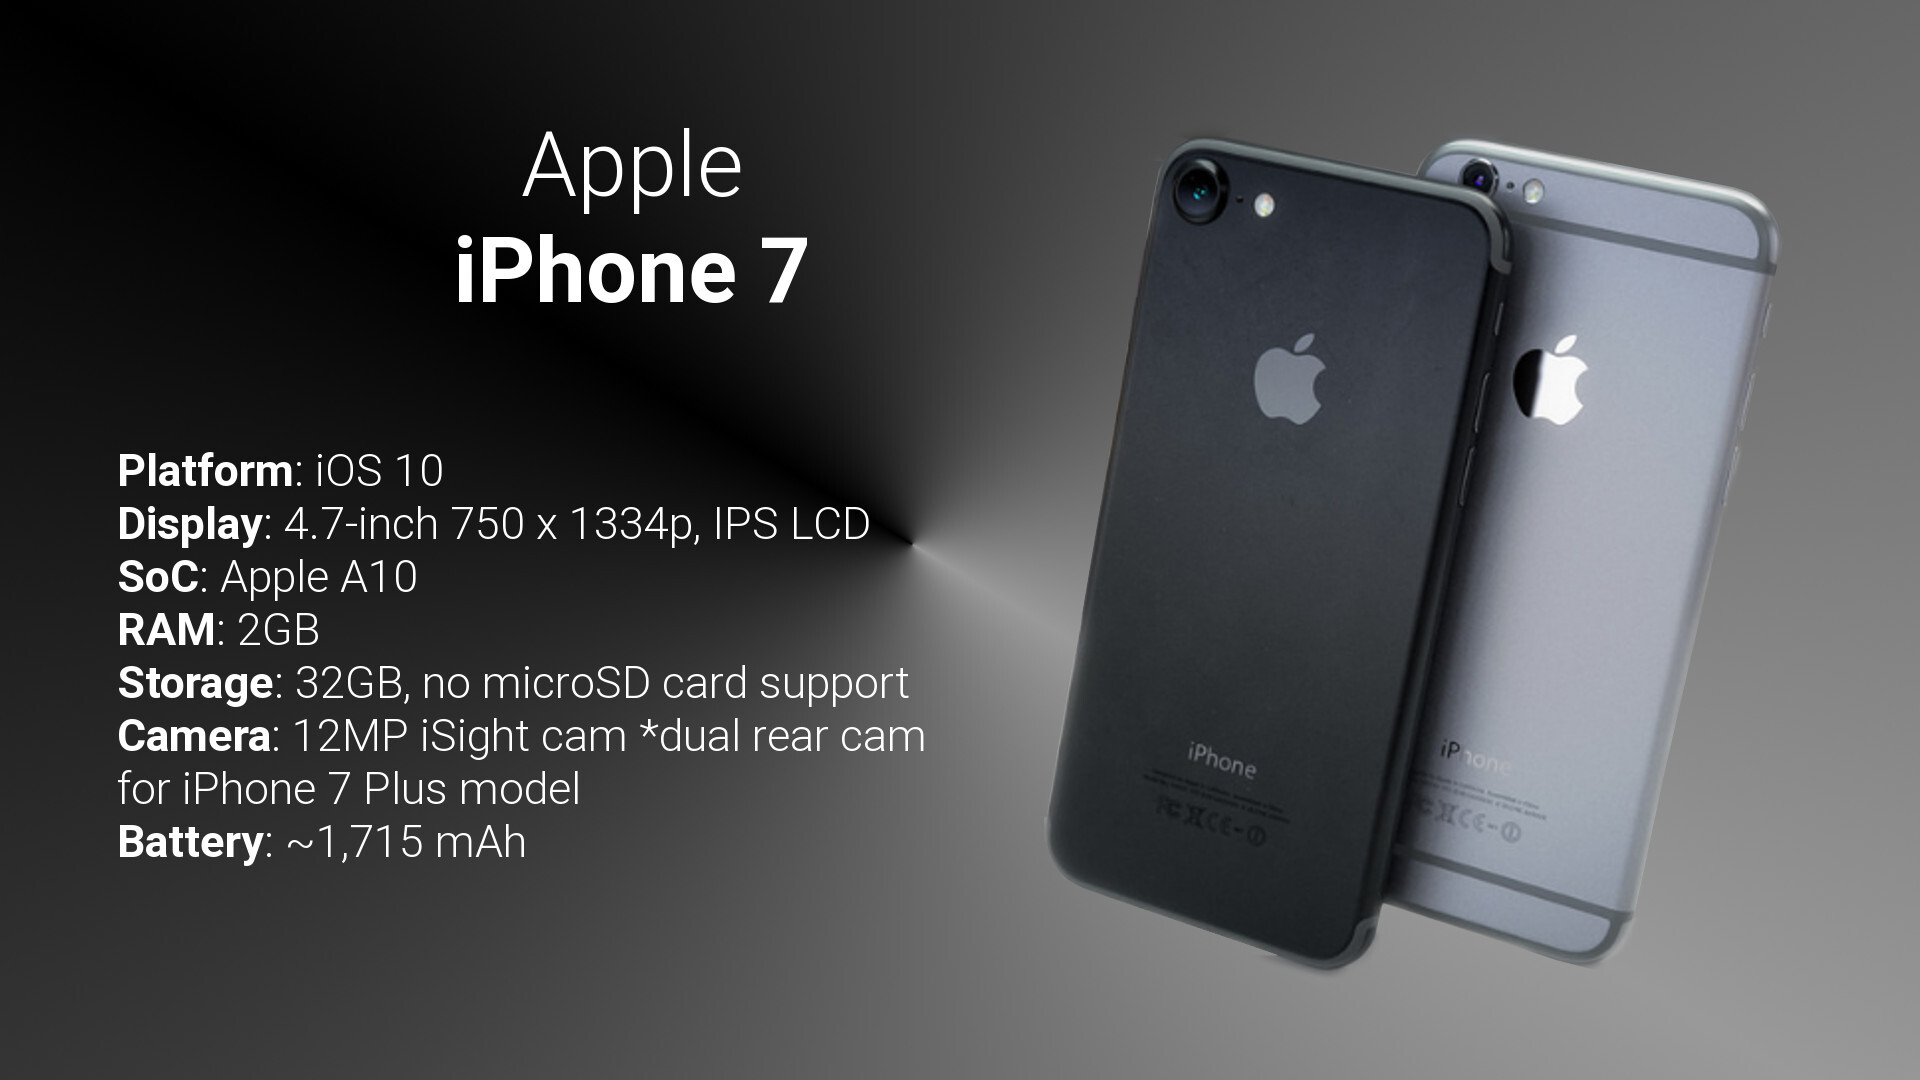 APPLE IPHONE 7 SPECIFICATION